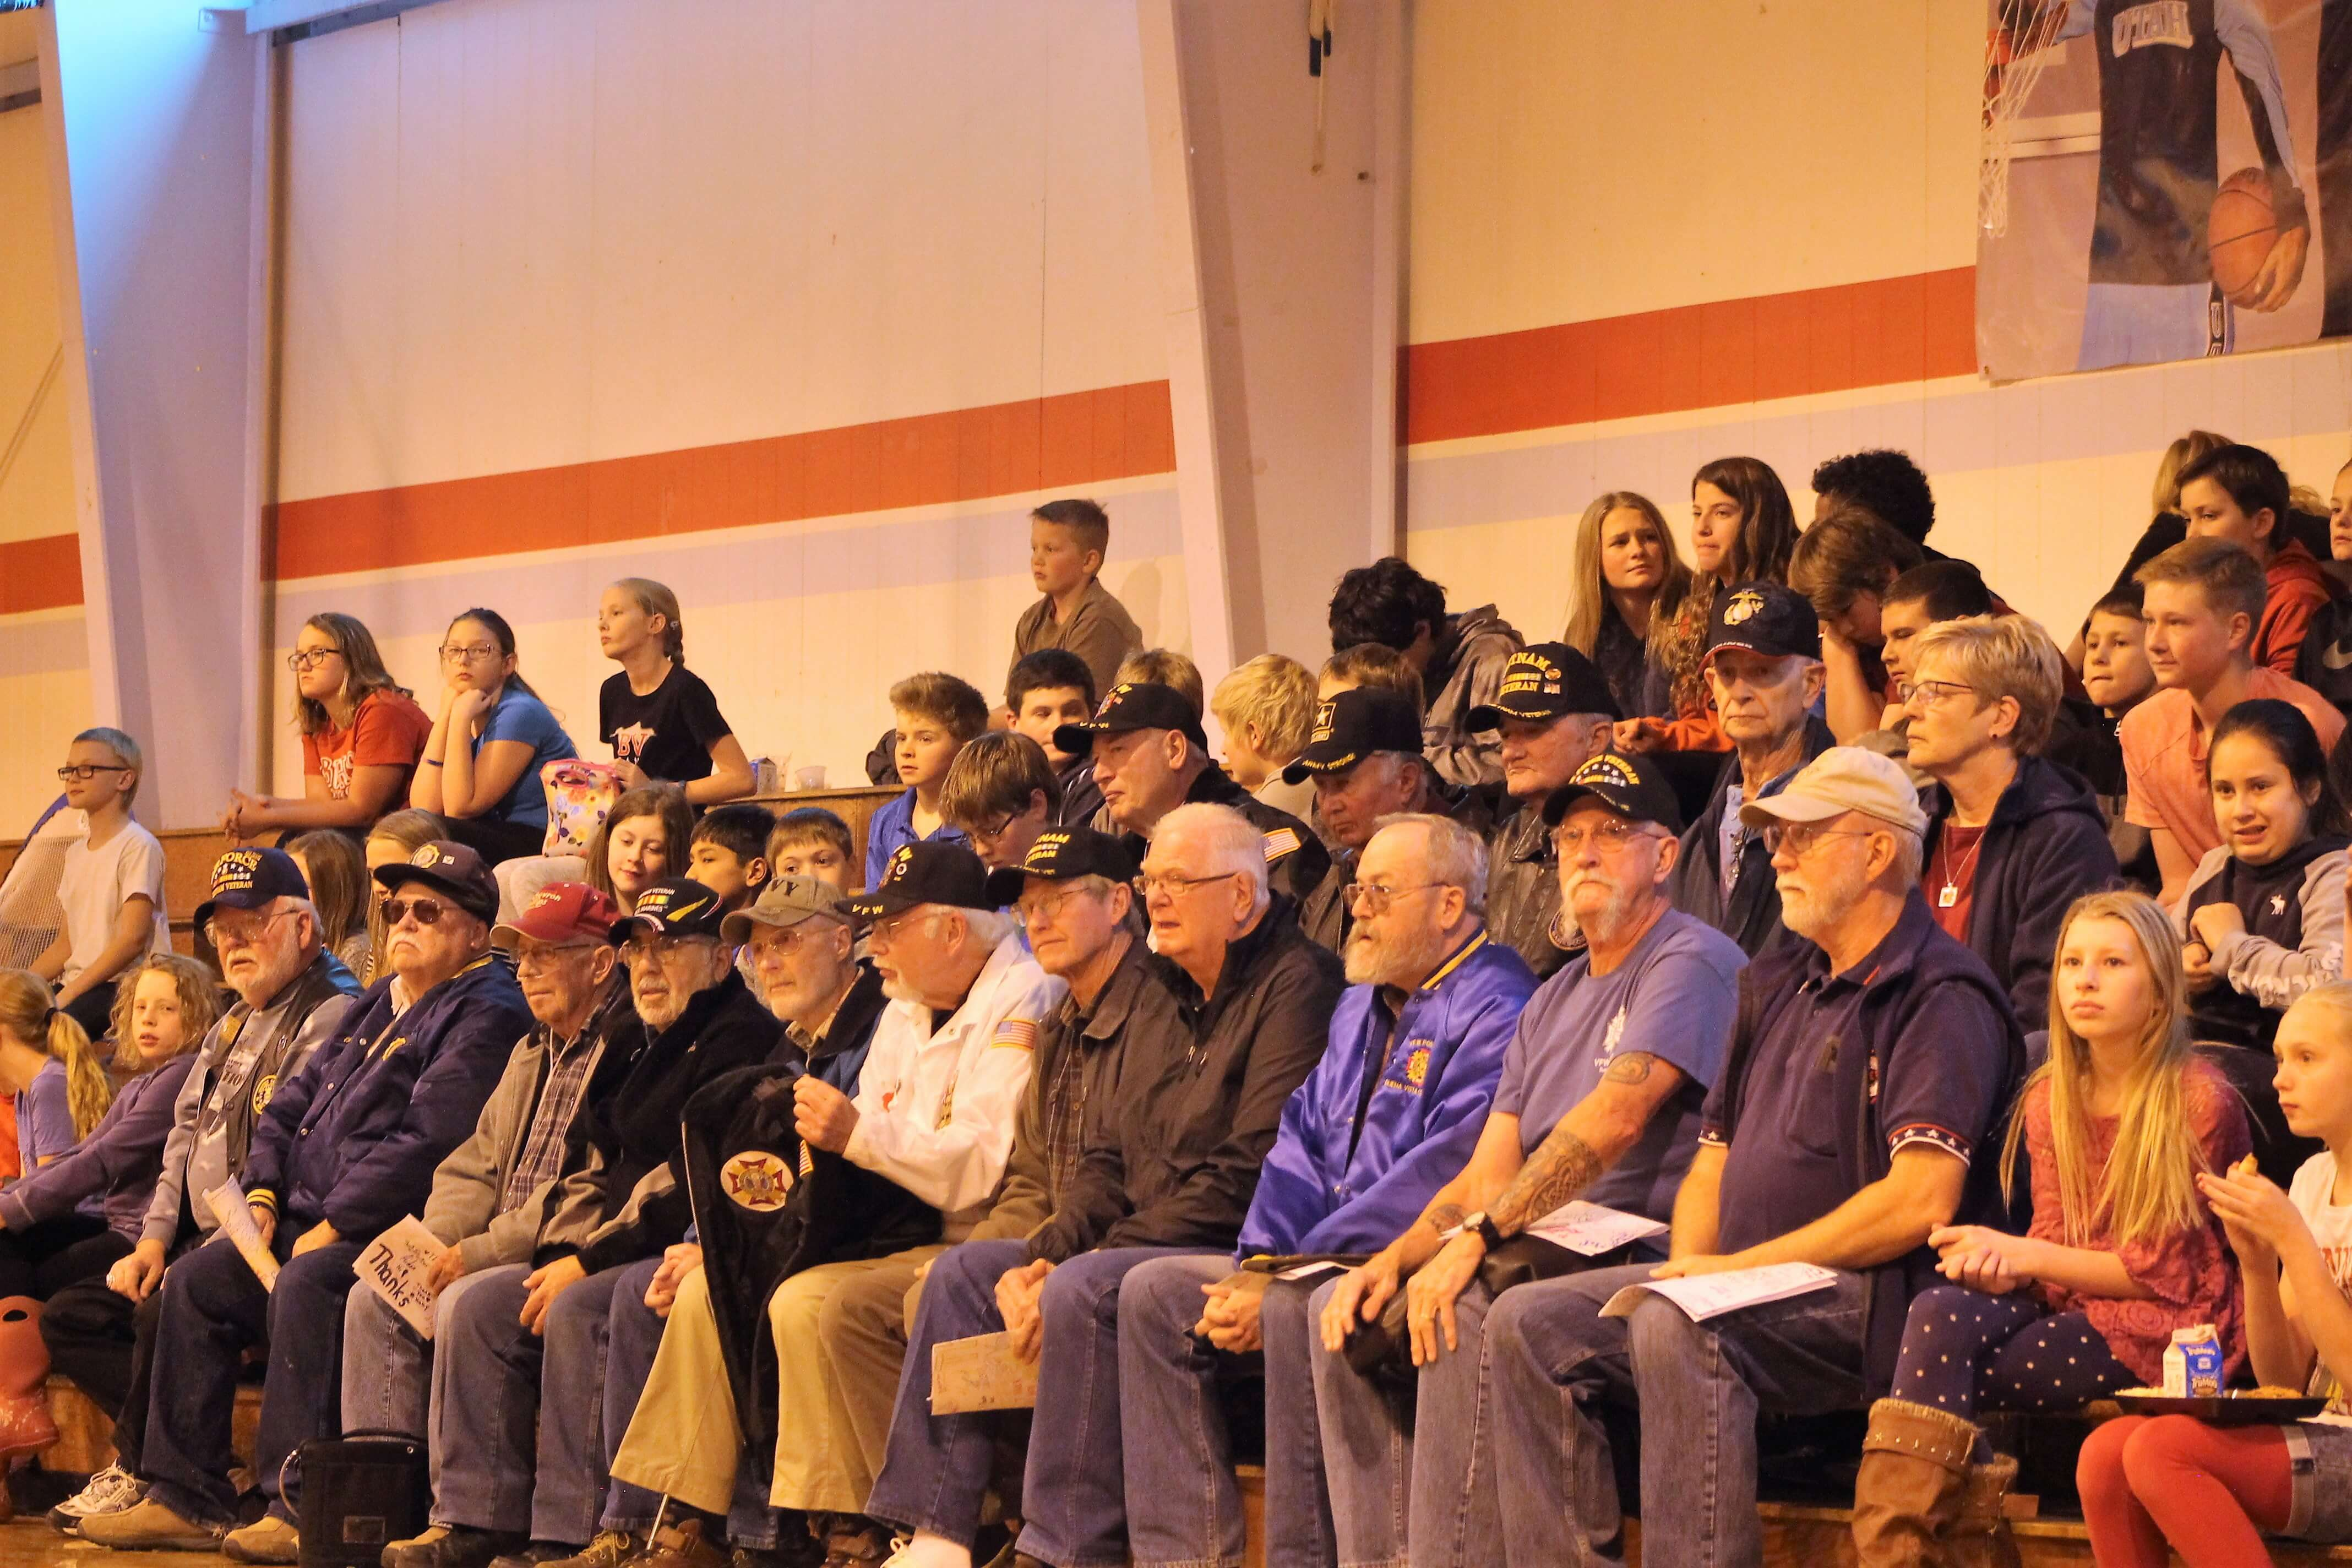 Contemporary image of veterans and middle school students sitting in bleachers for an assembly.